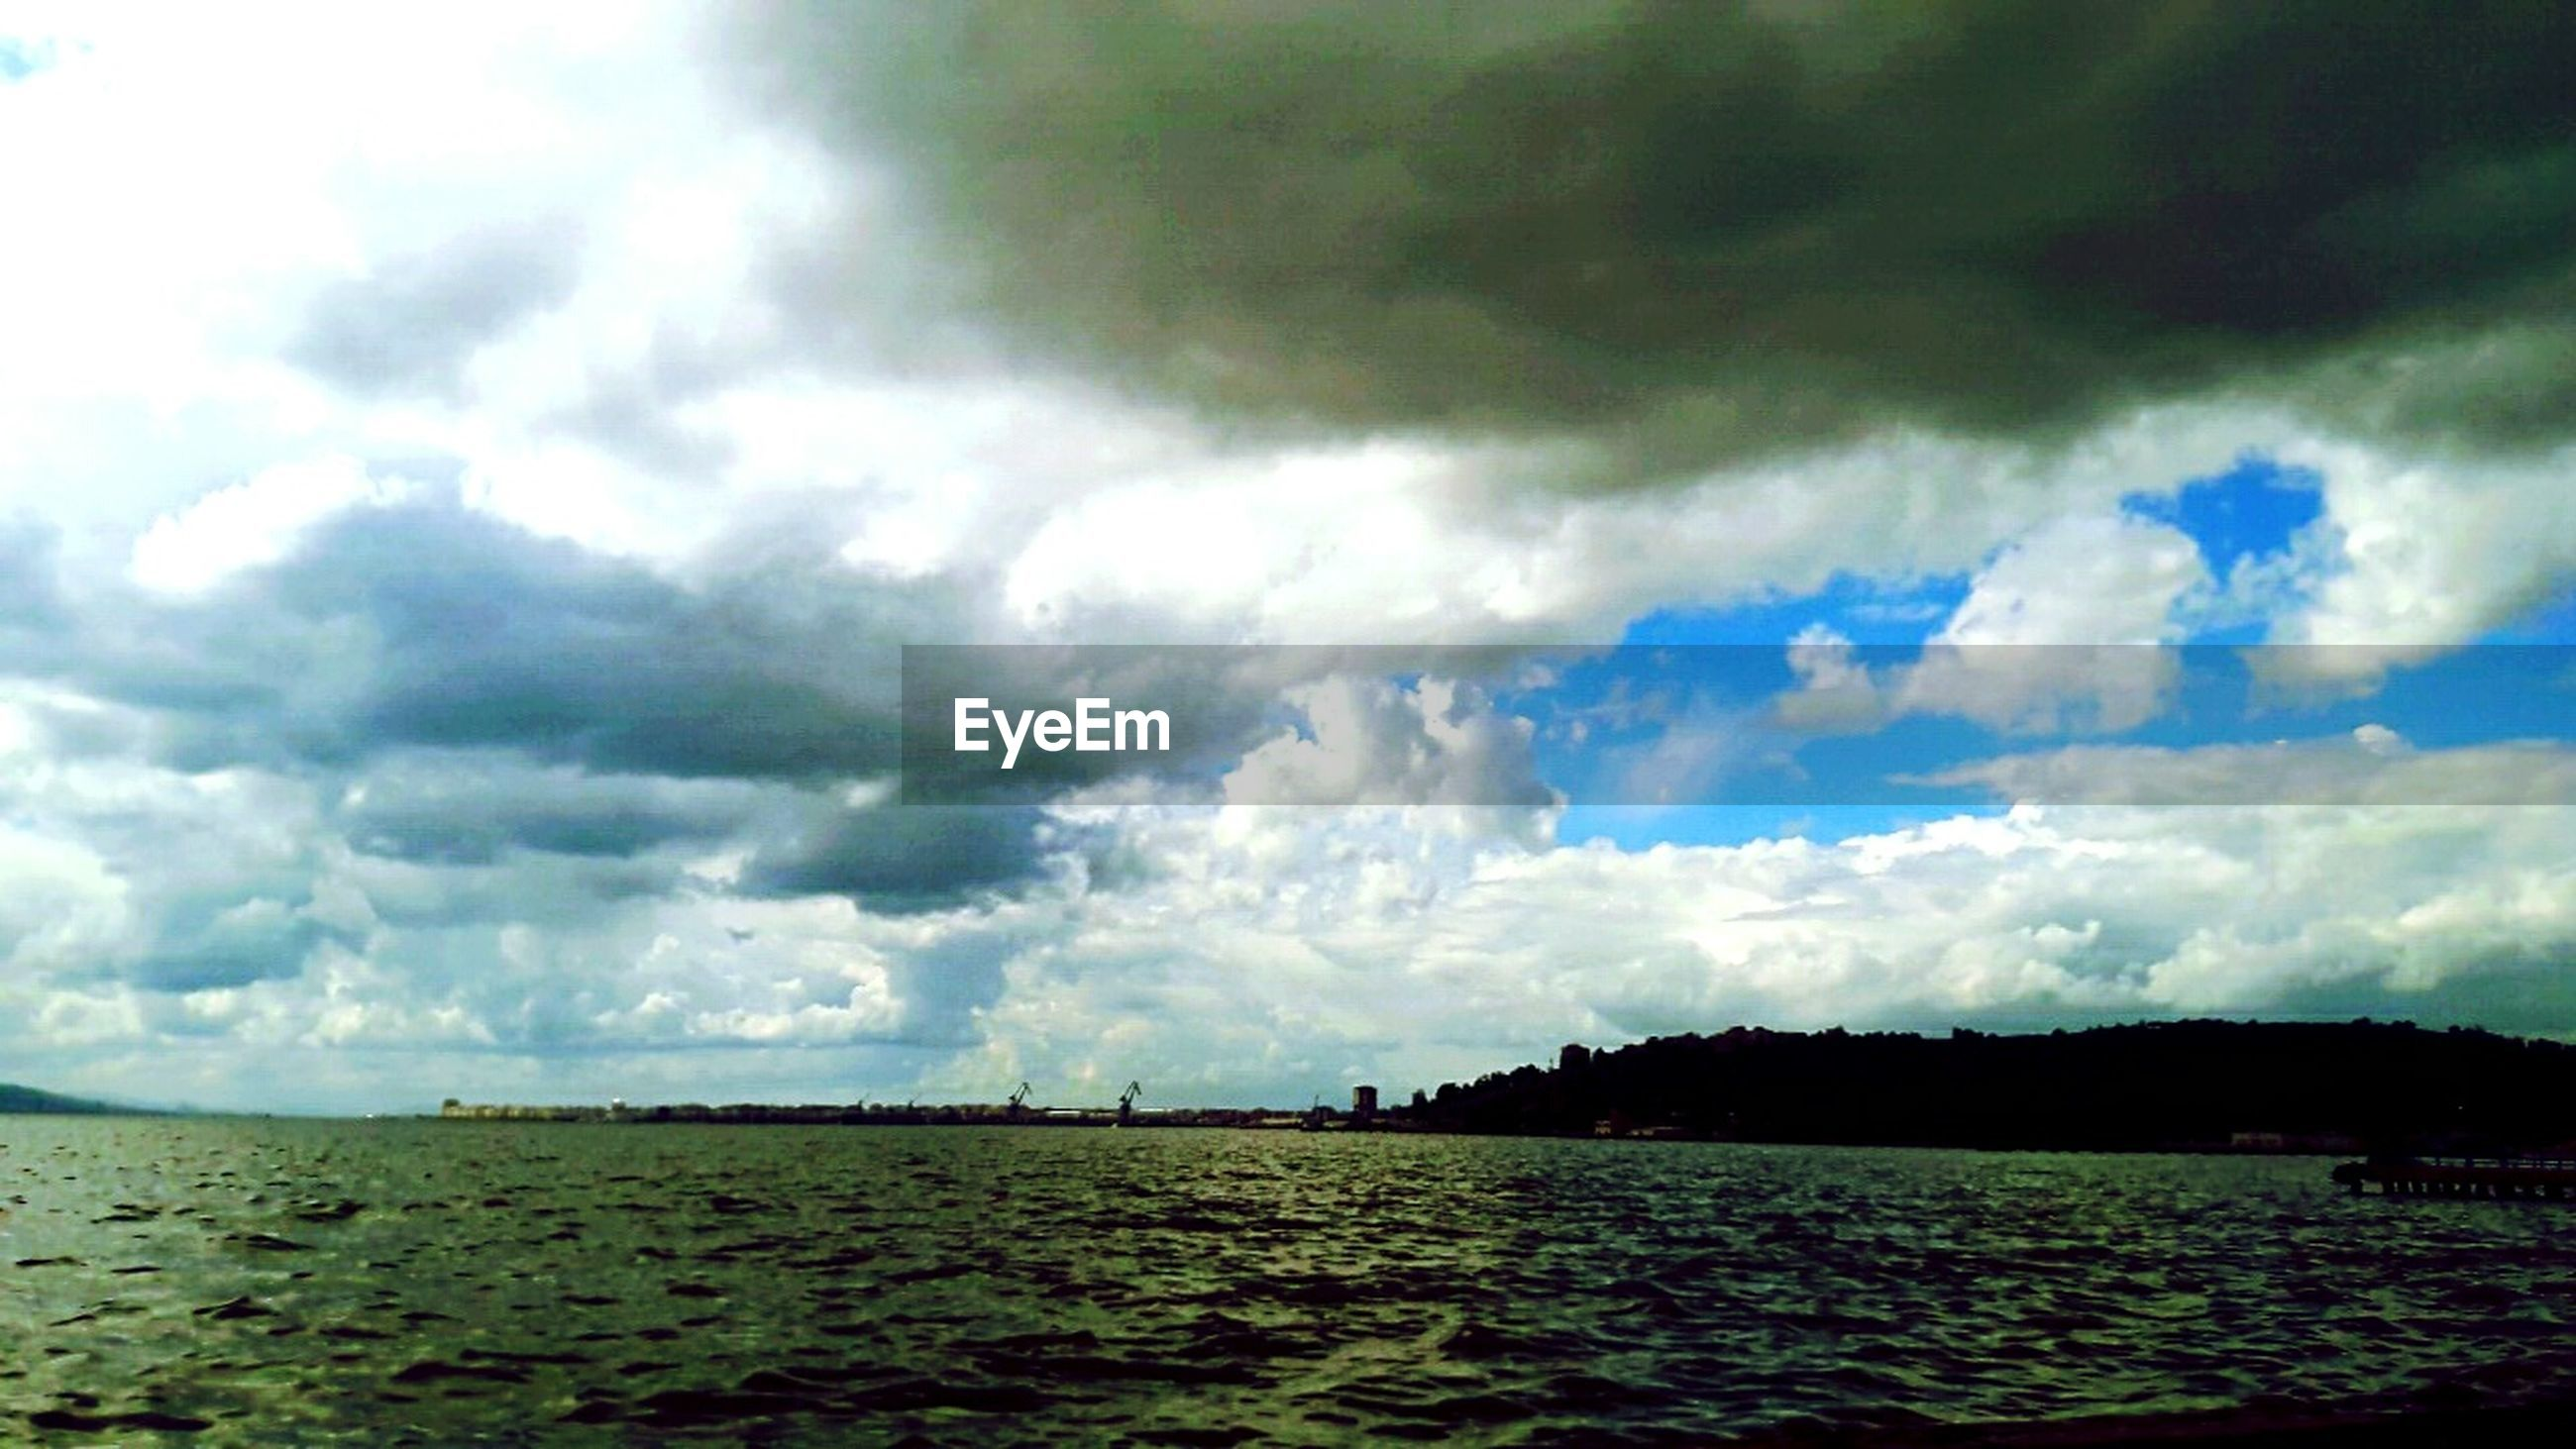 sky, cloud - sky, cloudy, tranquil scene, tranquility, scenics, beauty in nature, landscape, nature, cloud, field, grass, weather, overcast, water, sea, idyllic, storm cloud, day, remote